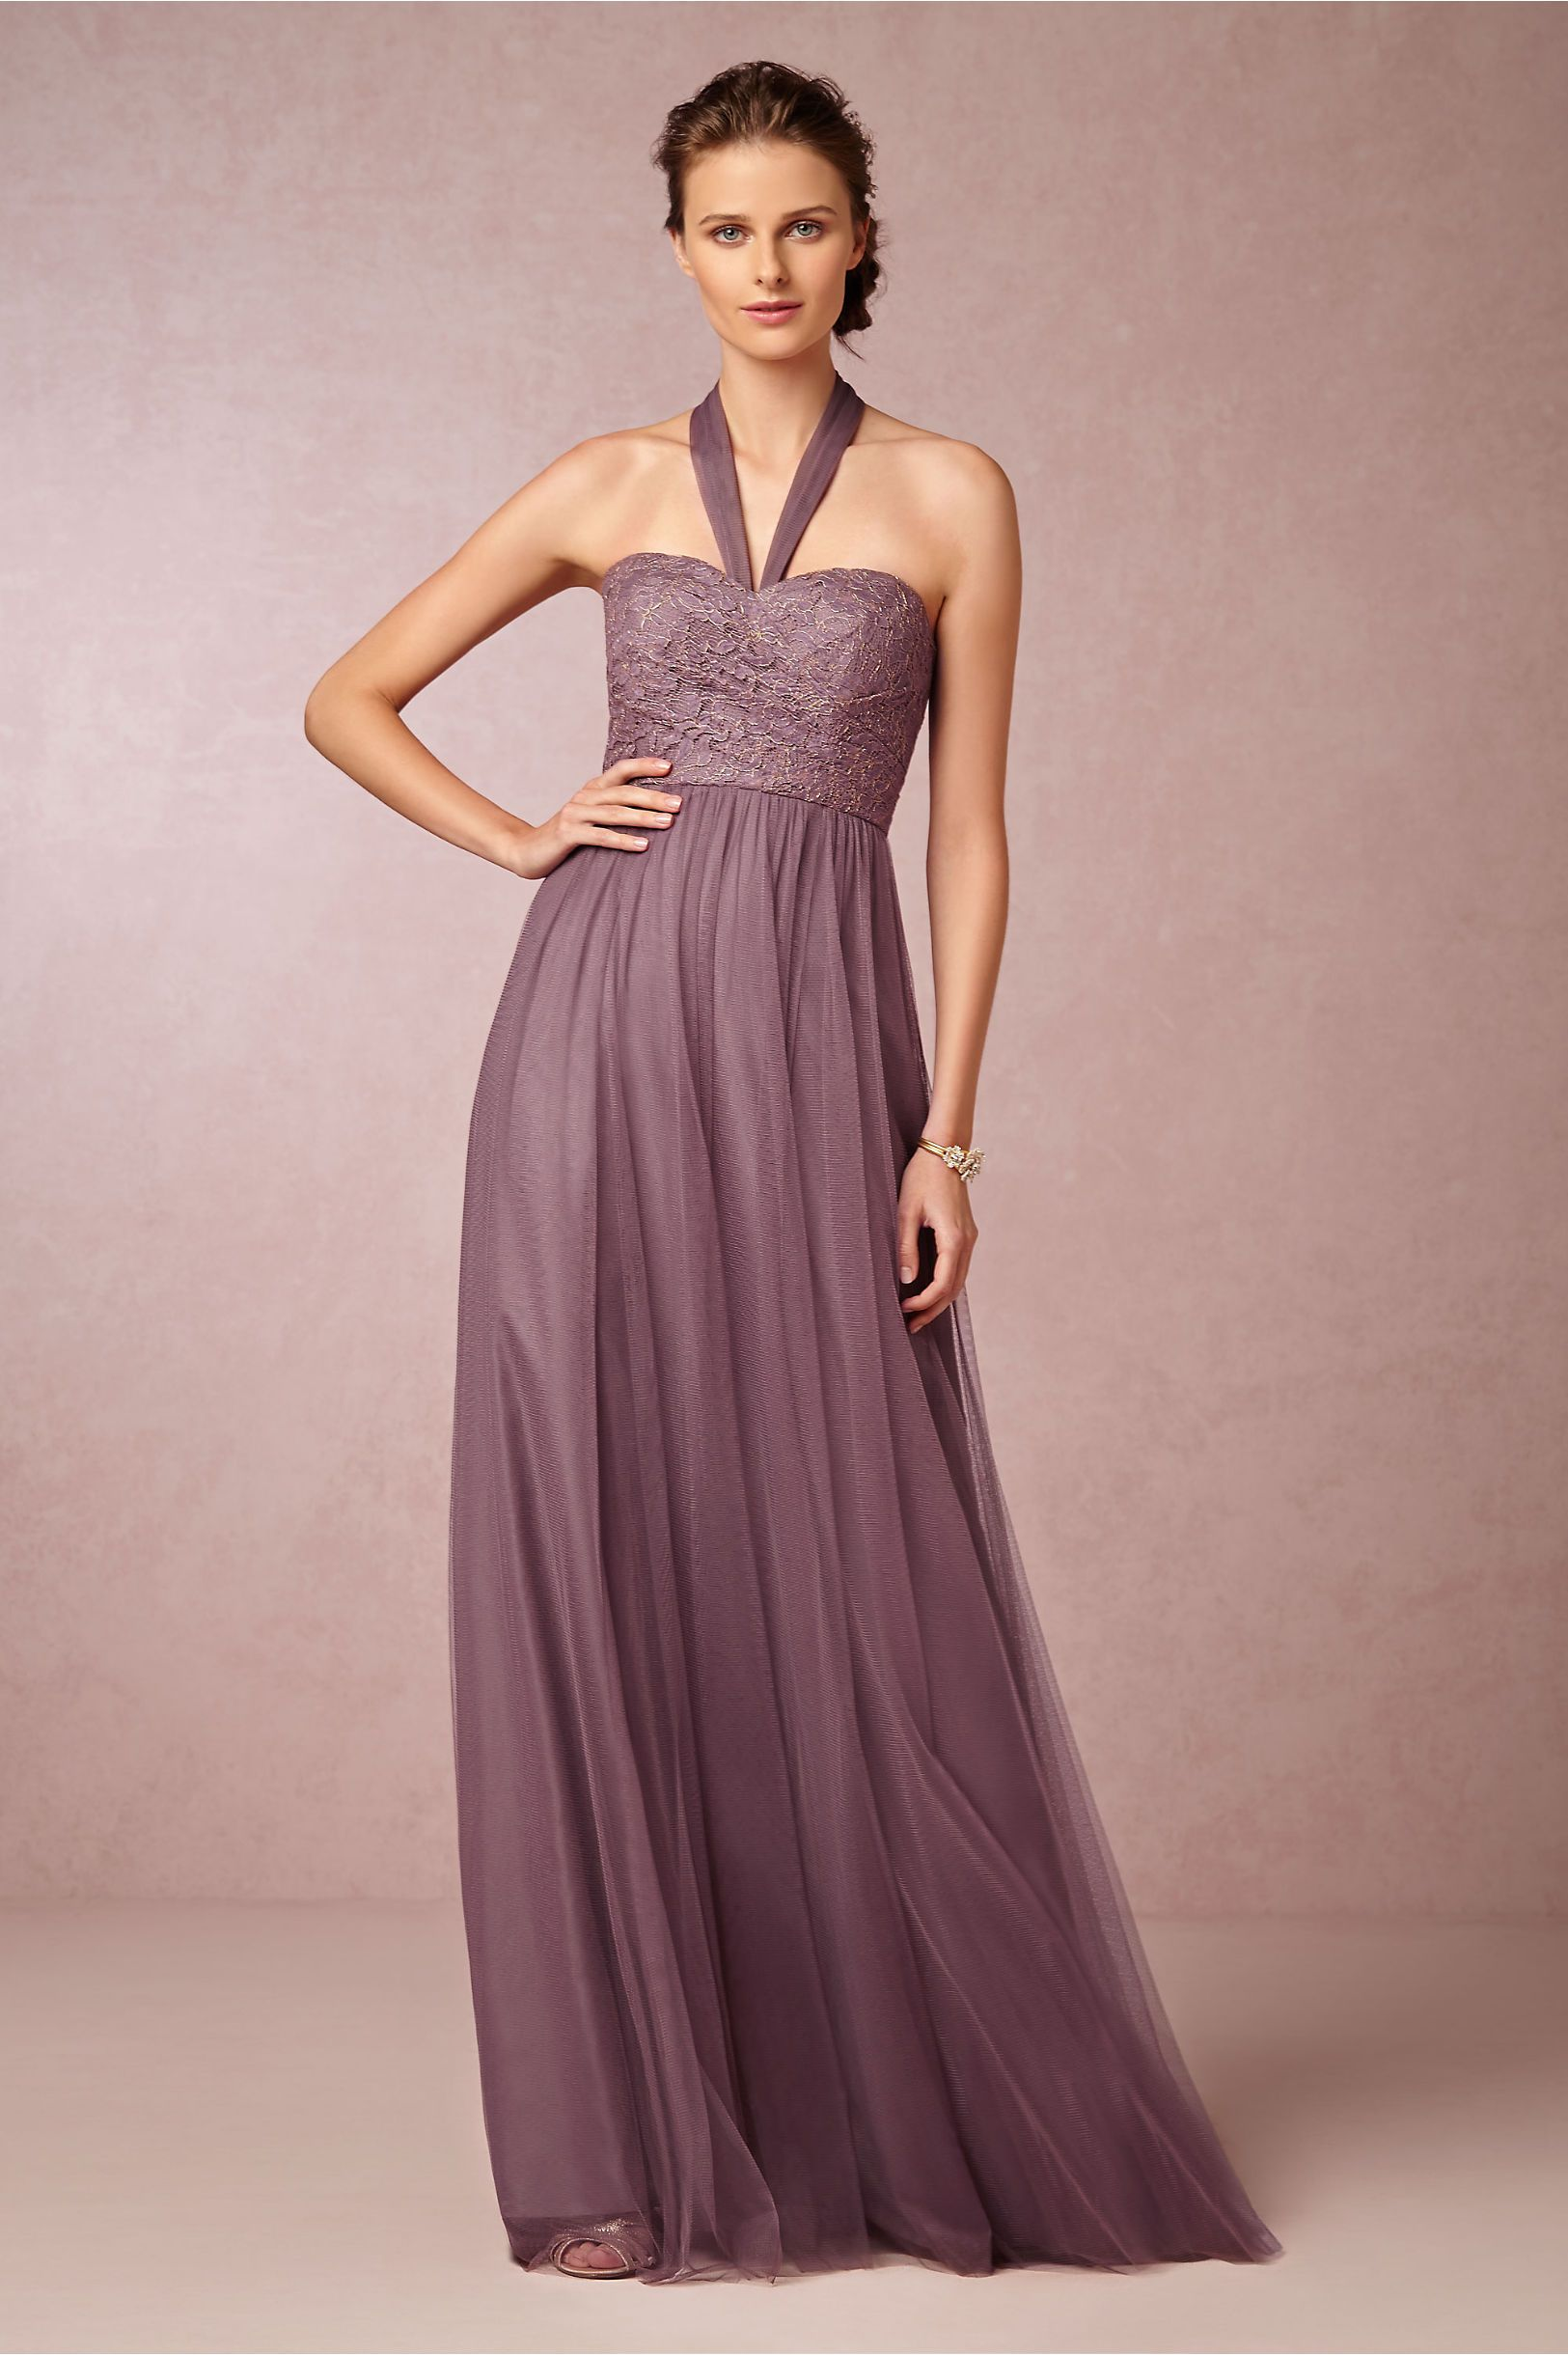 Juliette Dress in soft plum from BHLDN | Purple Wedding Ideas ...